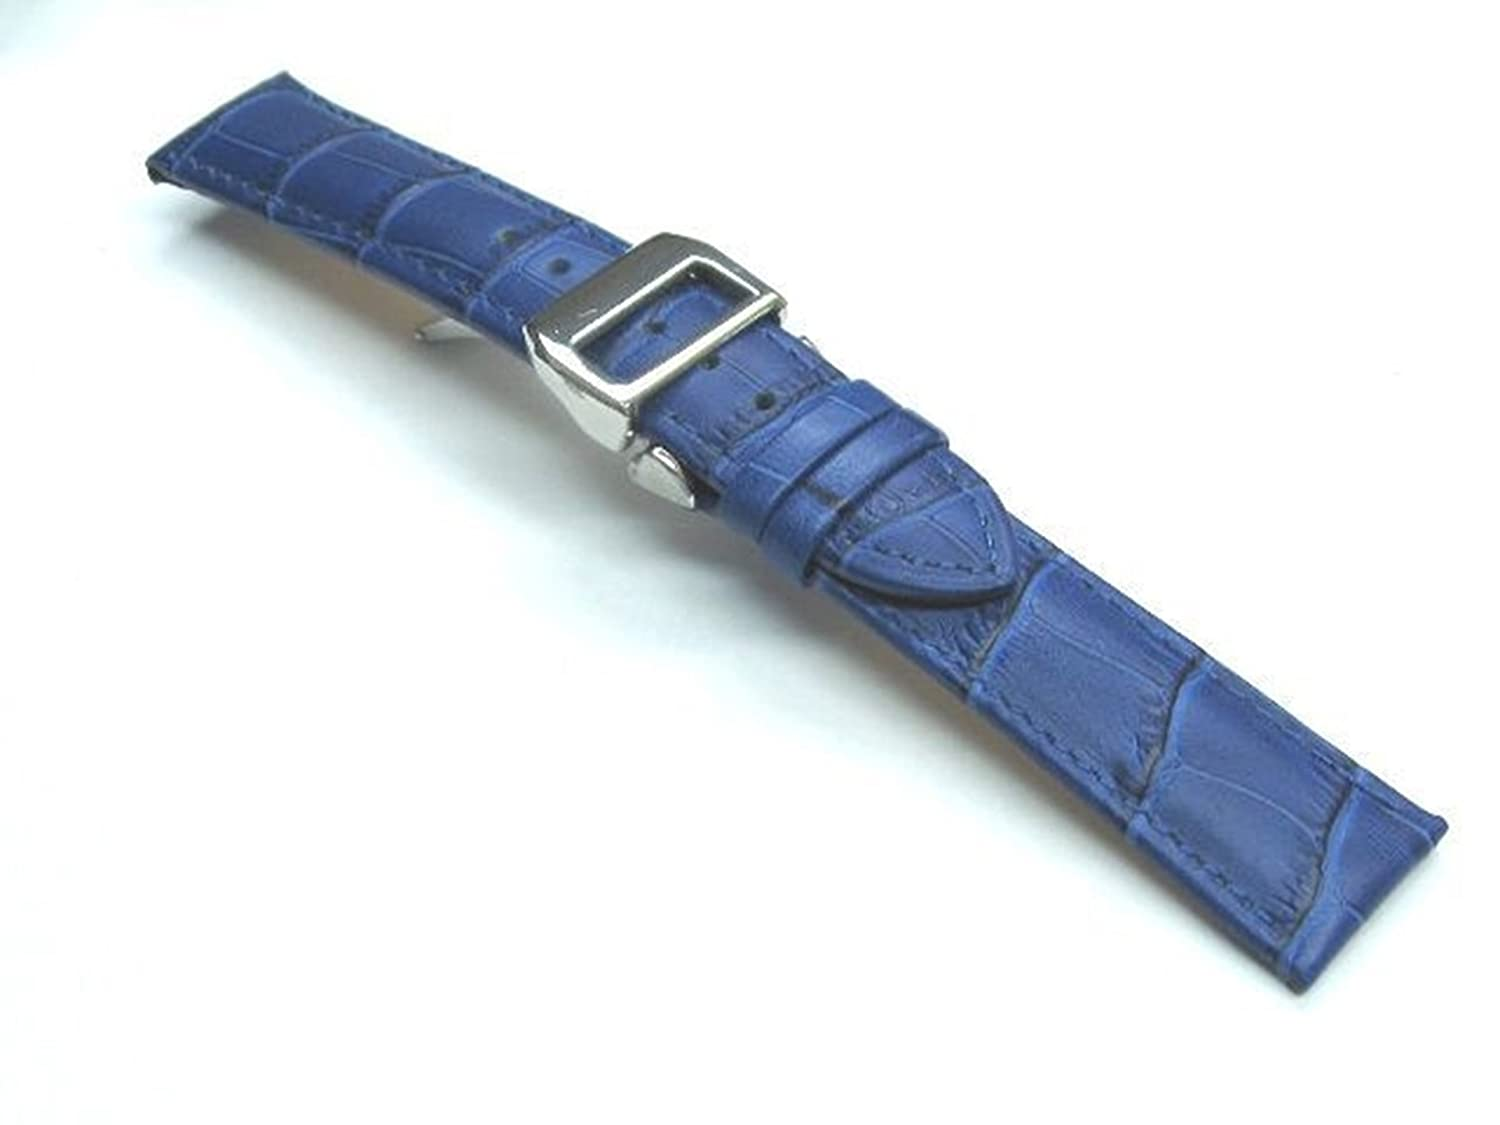 20 mm Italian Leather Watch Band Strap Deployment Clasp for IWC Portugueseブルー7b  B07D6PMPN2